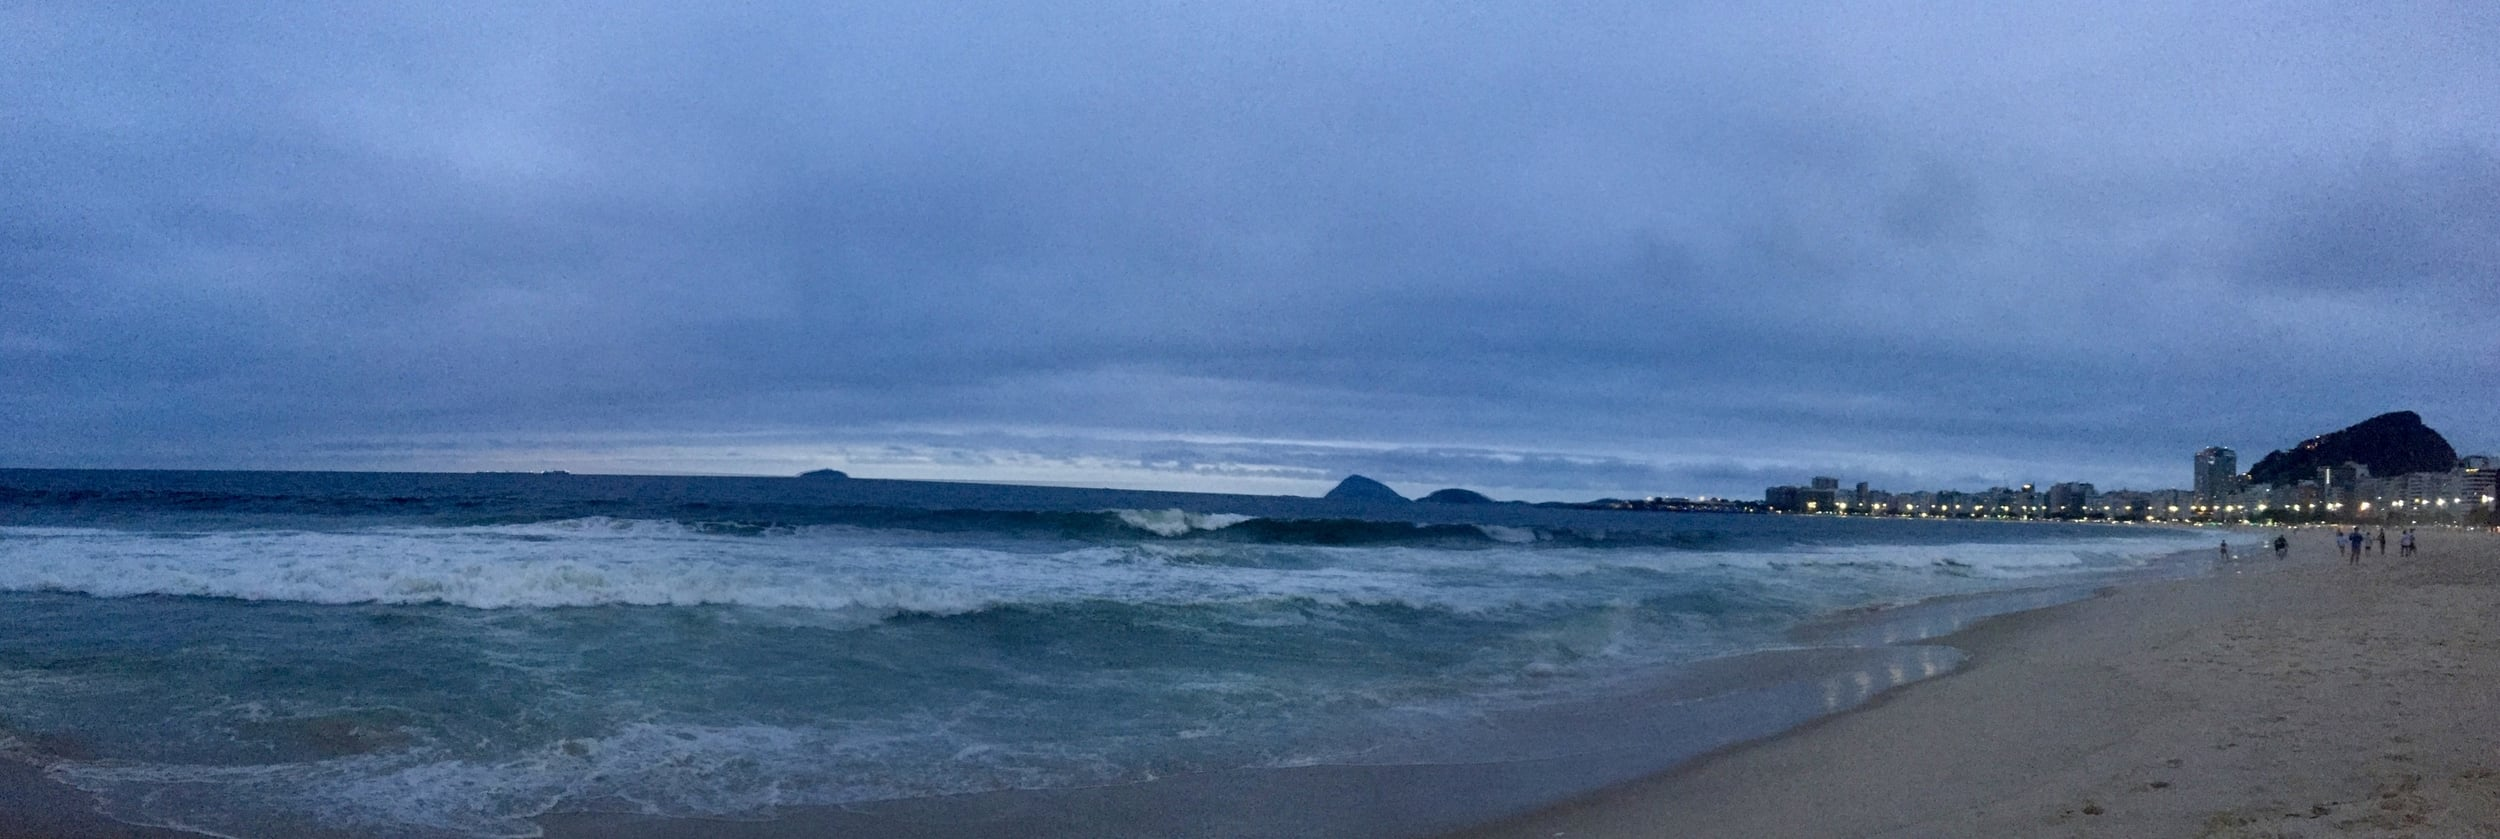 Copacabana beach at dusk